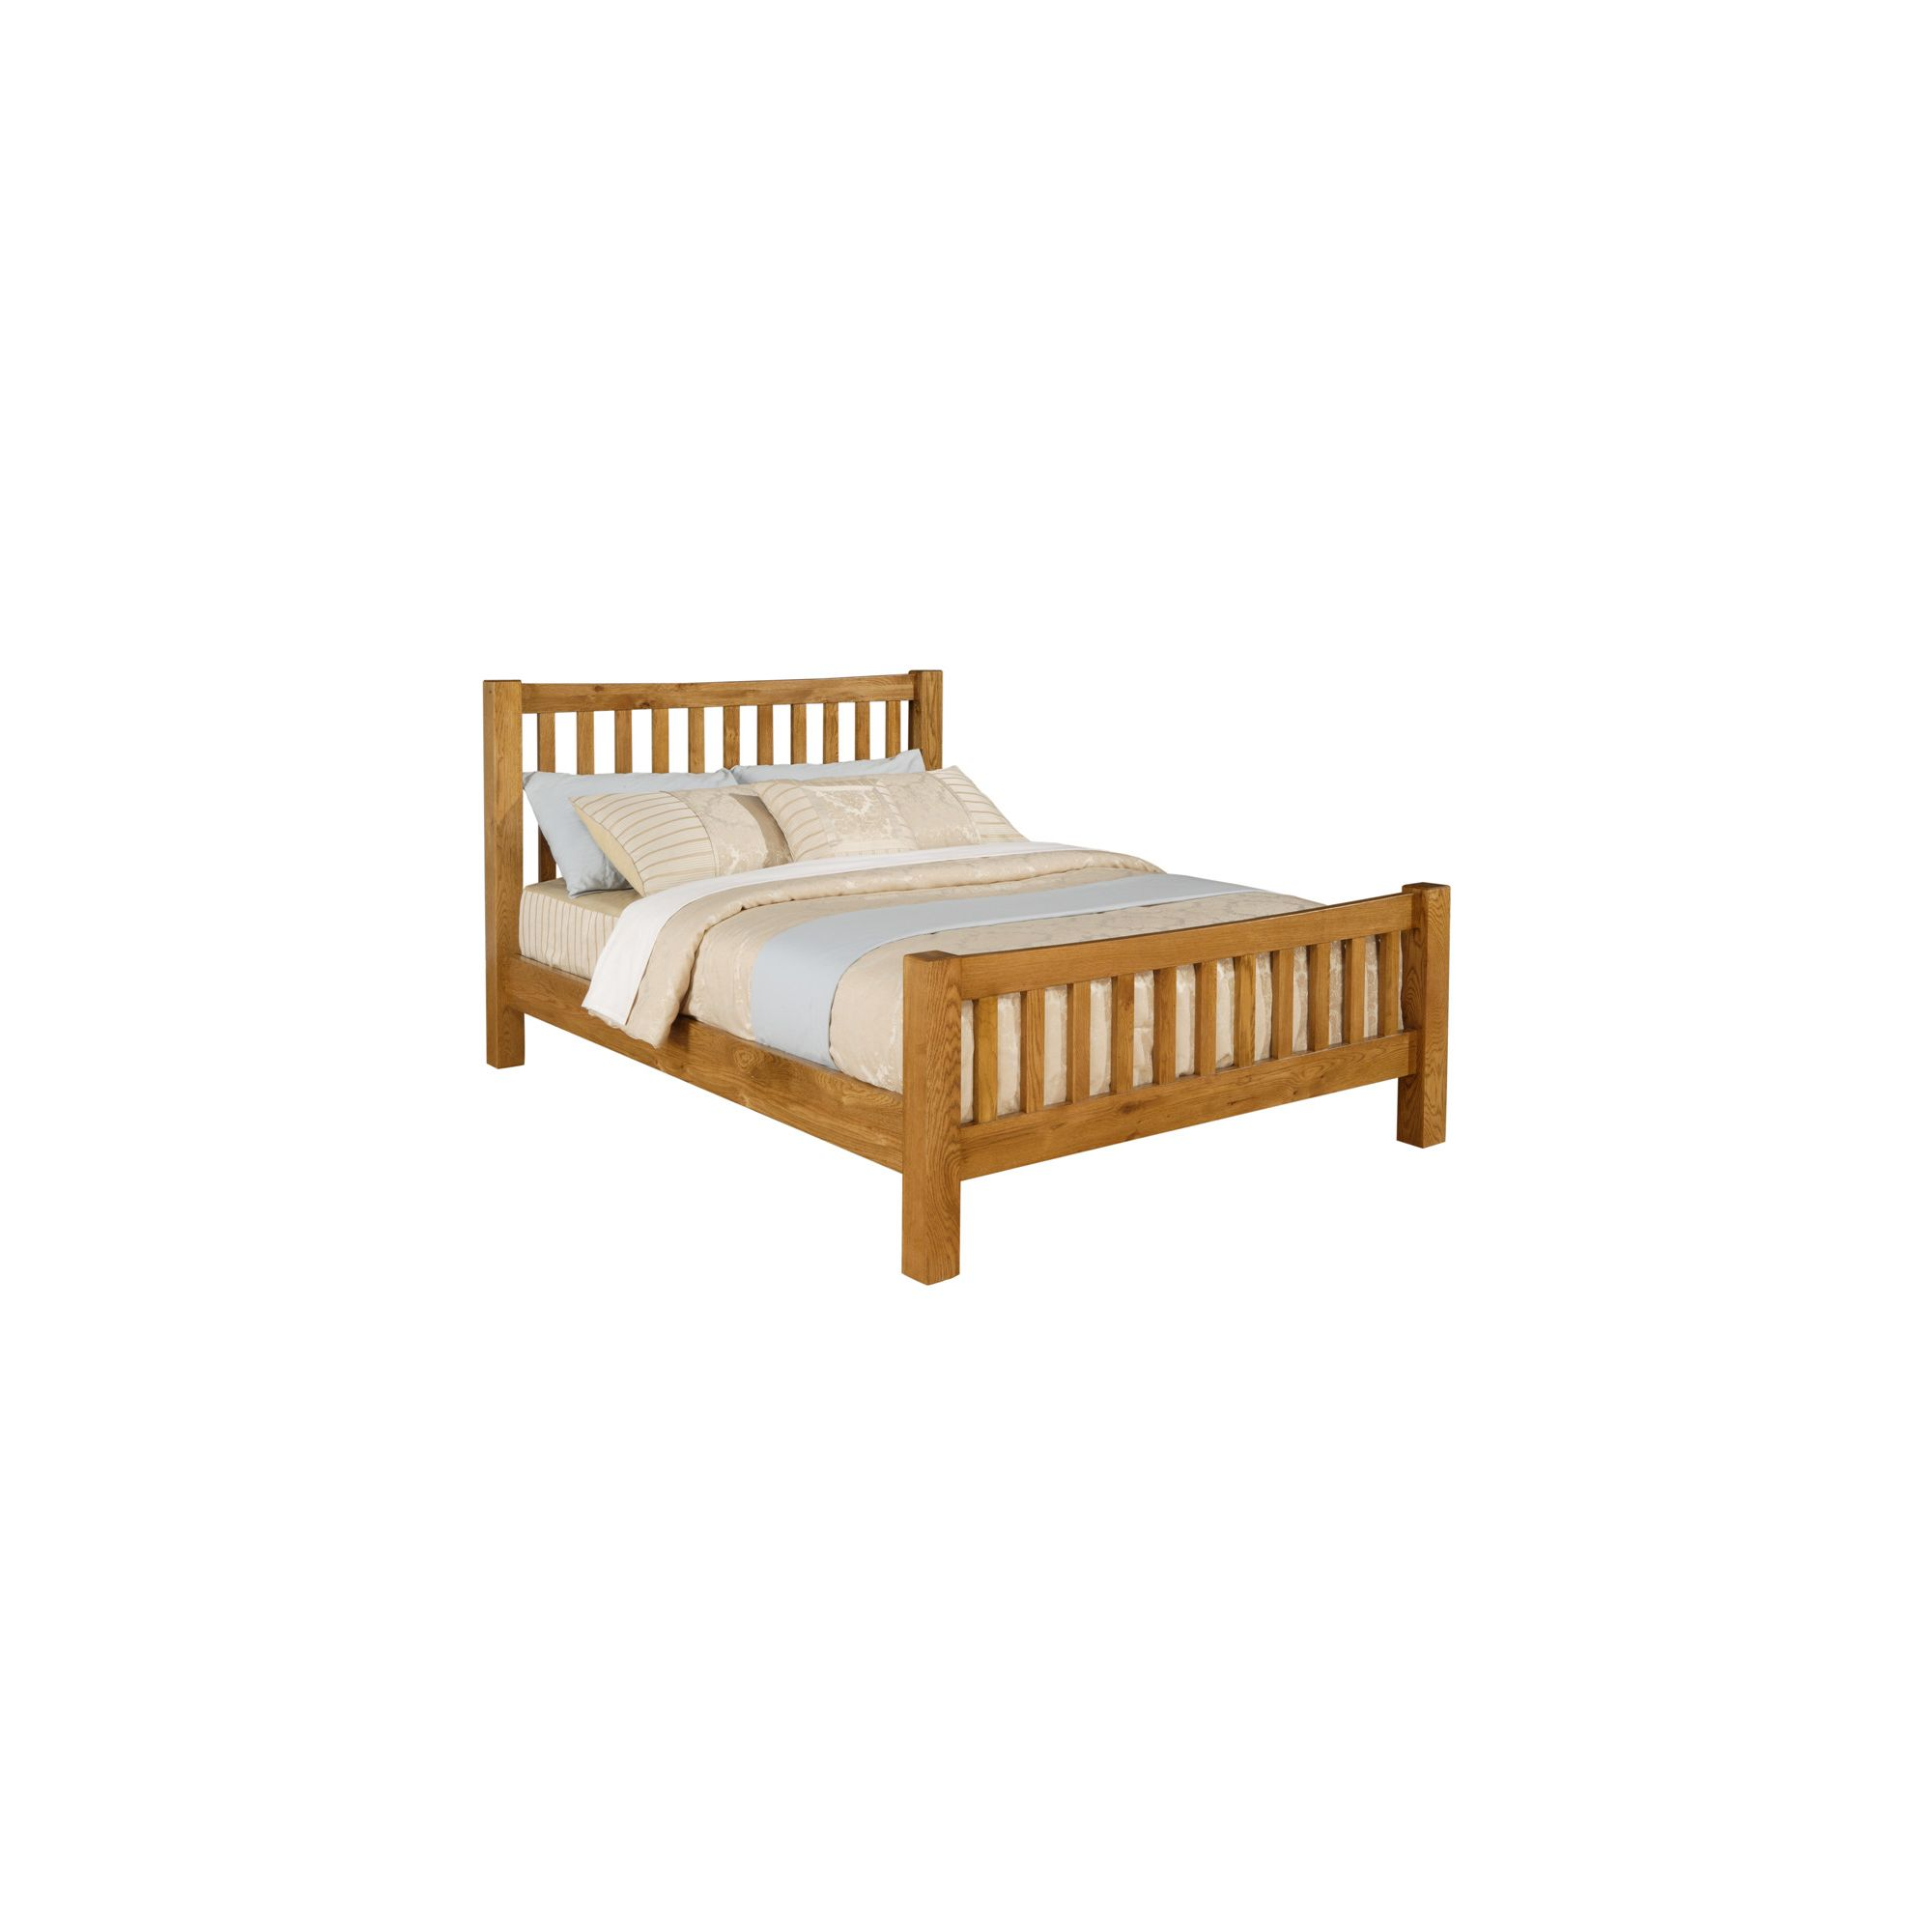 Altruna Denver Bed Frame - Single at Tesco Direct